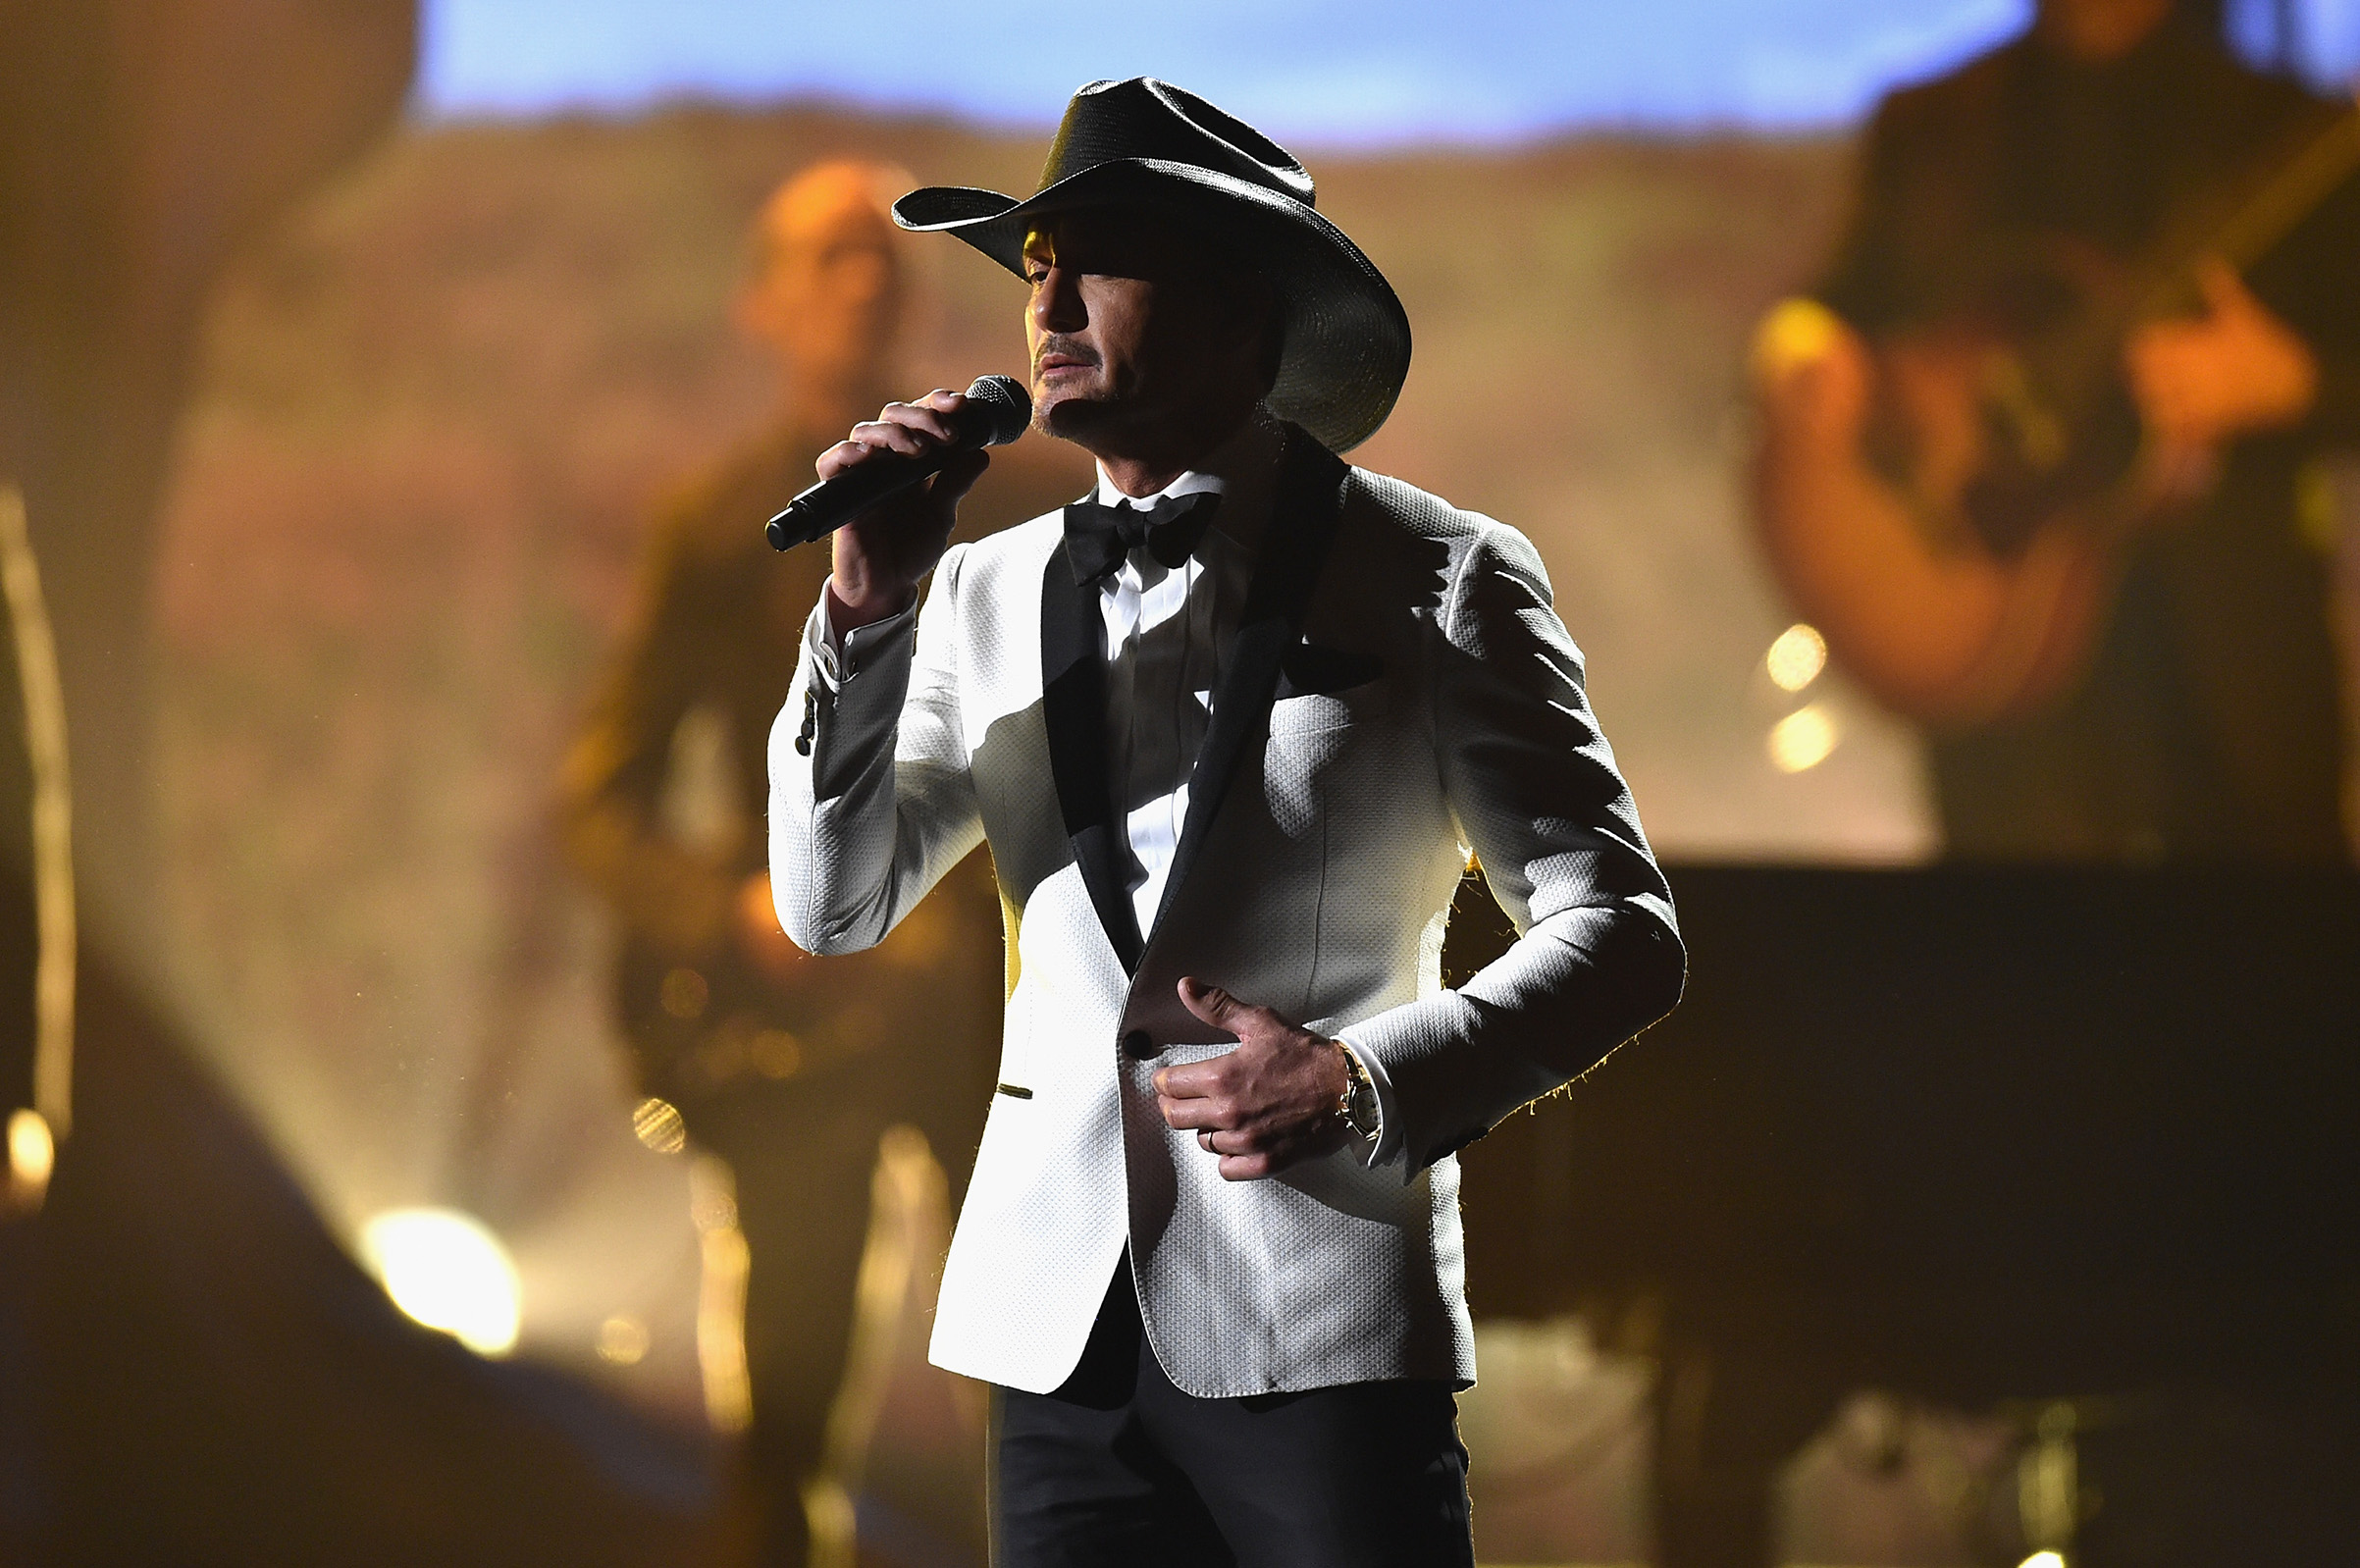 Tim McGraw performs onstage at the 51st annual CMA Awards at the Bridgestone Arena on Nov. 8, 2017.